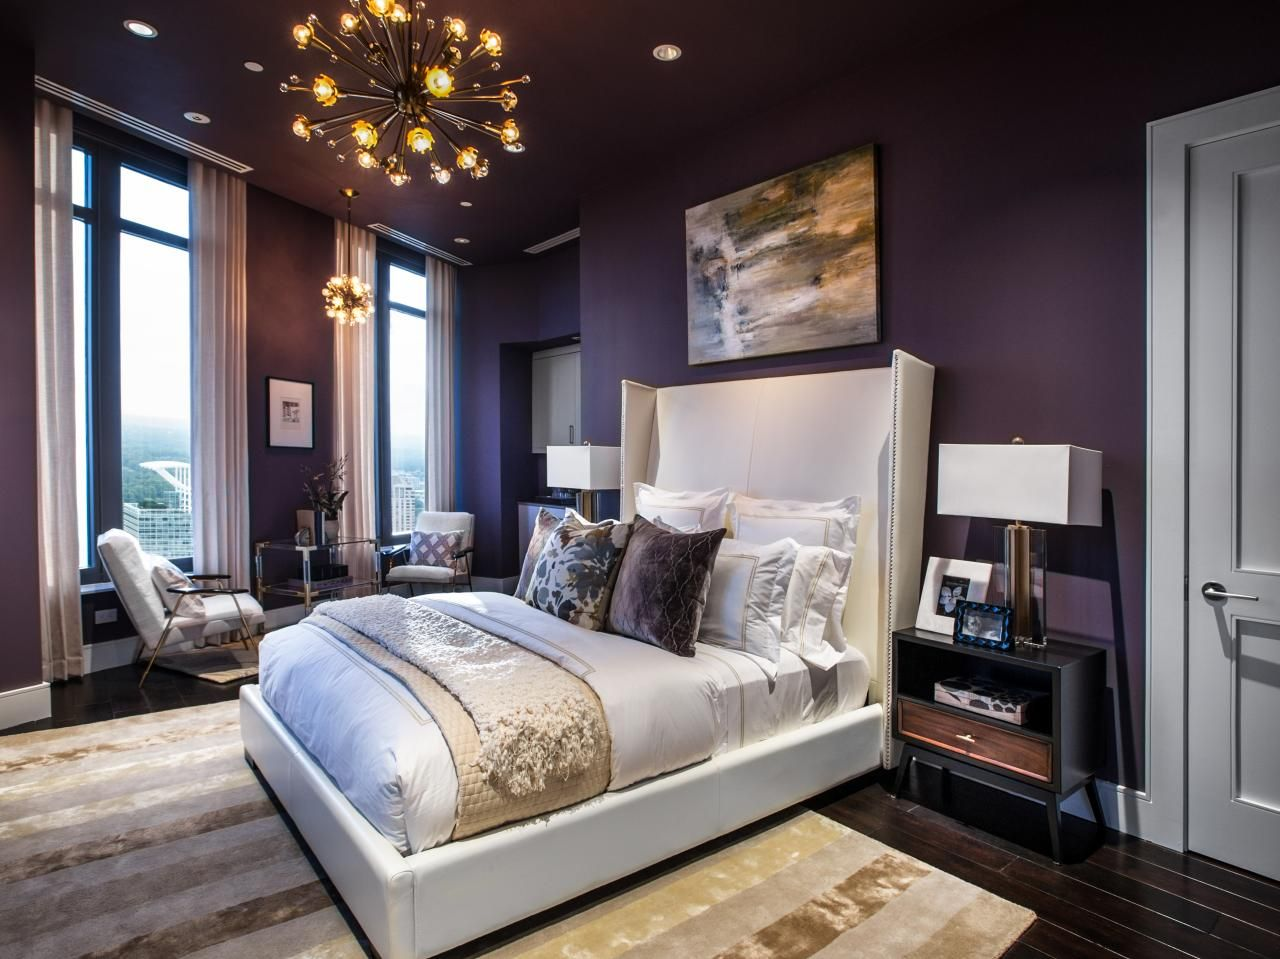 Best Master Bedroom Pictures From Hgtv Urban Oasis 2014 Grey 400 x 300